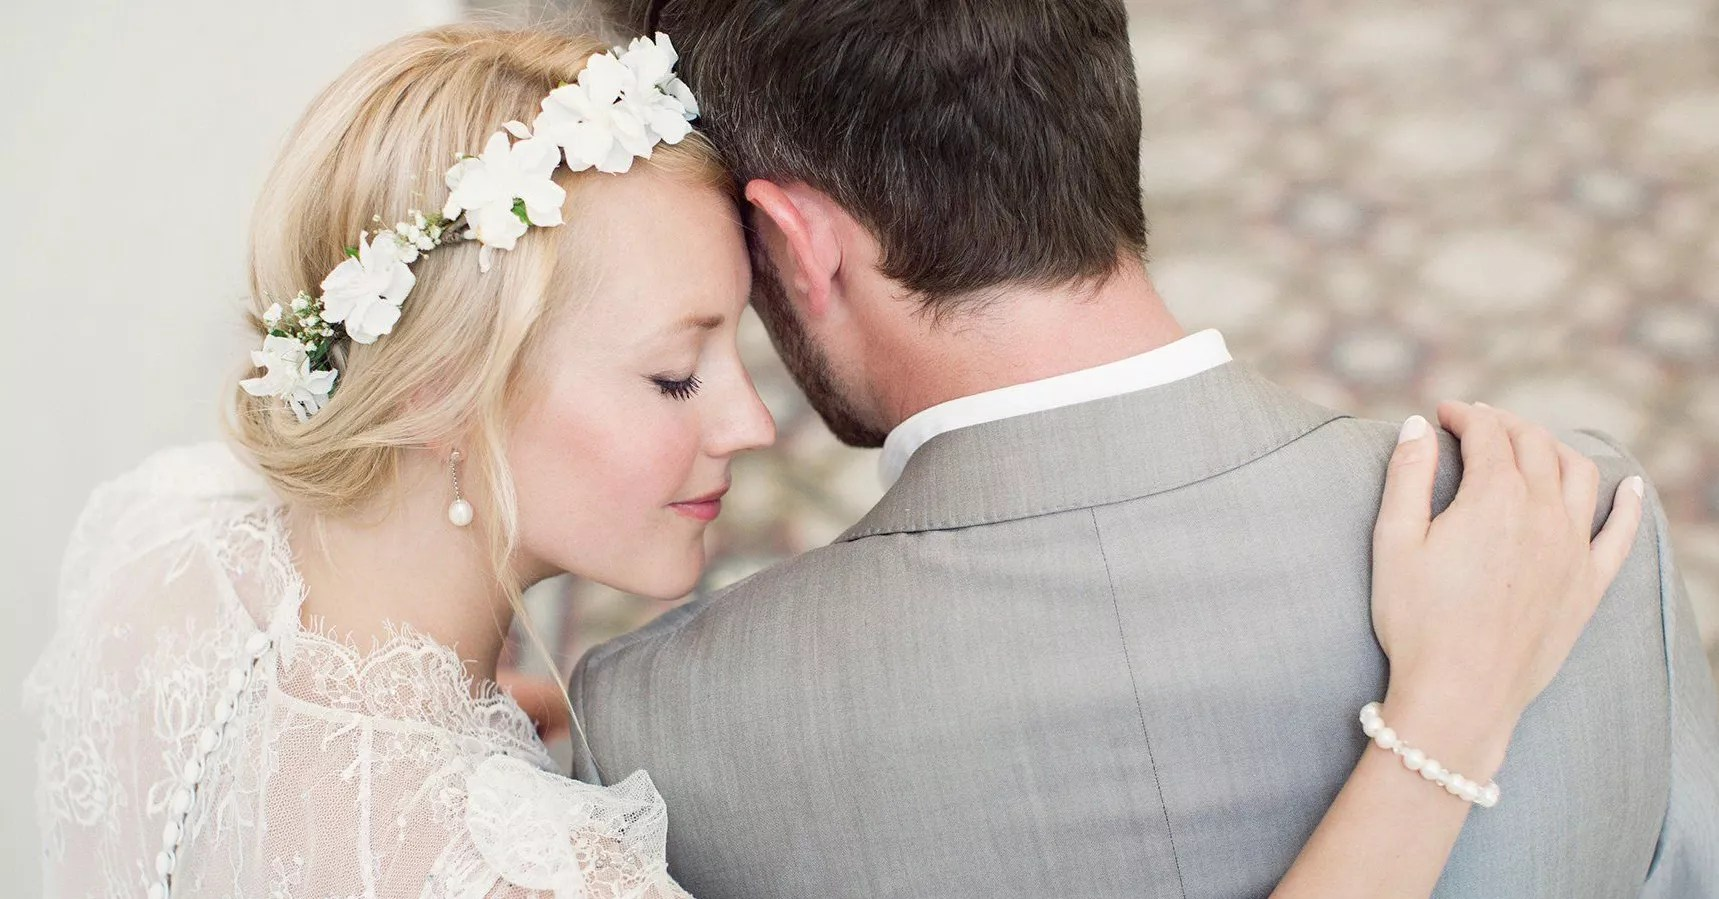 Accessorizing Your Wedding Dress: Rules For Wedding Day